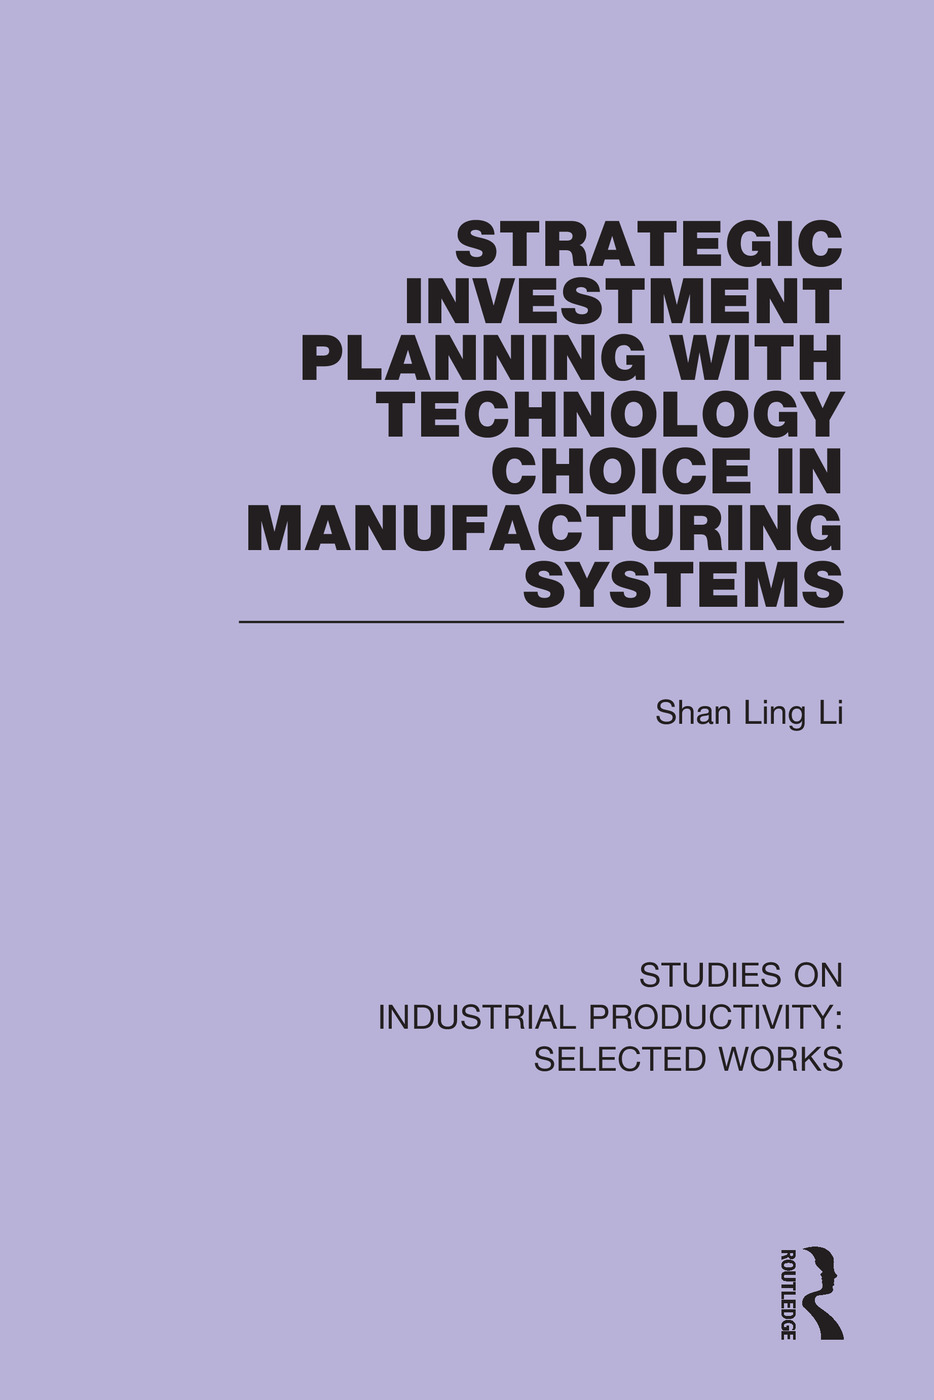 Strategic Investment Planning with Technology Choice in Manufacturing Systems